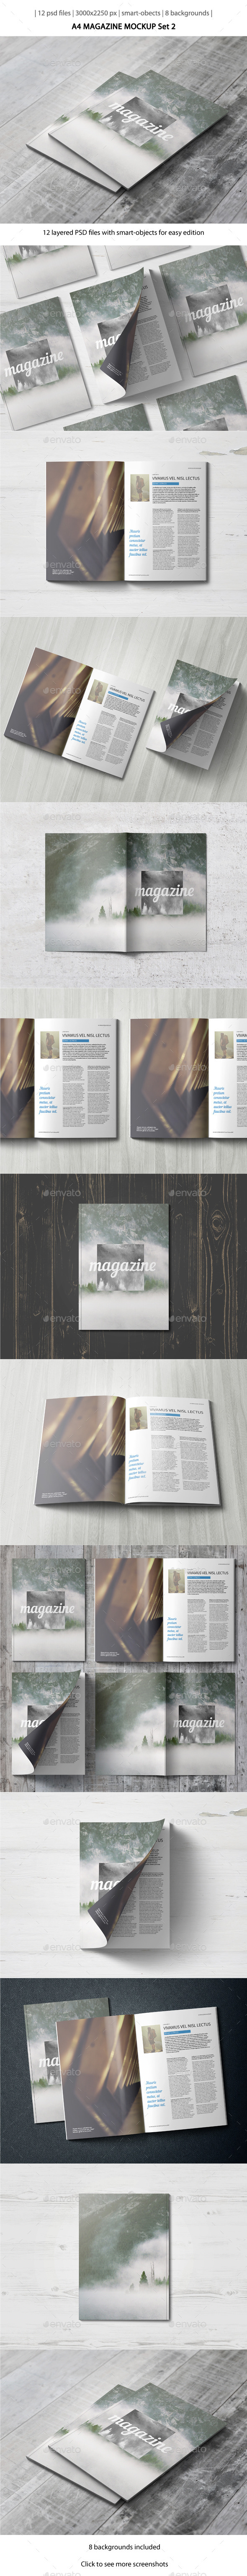 GraphicRiver A4 Magazine Mockup Set 2 10638187